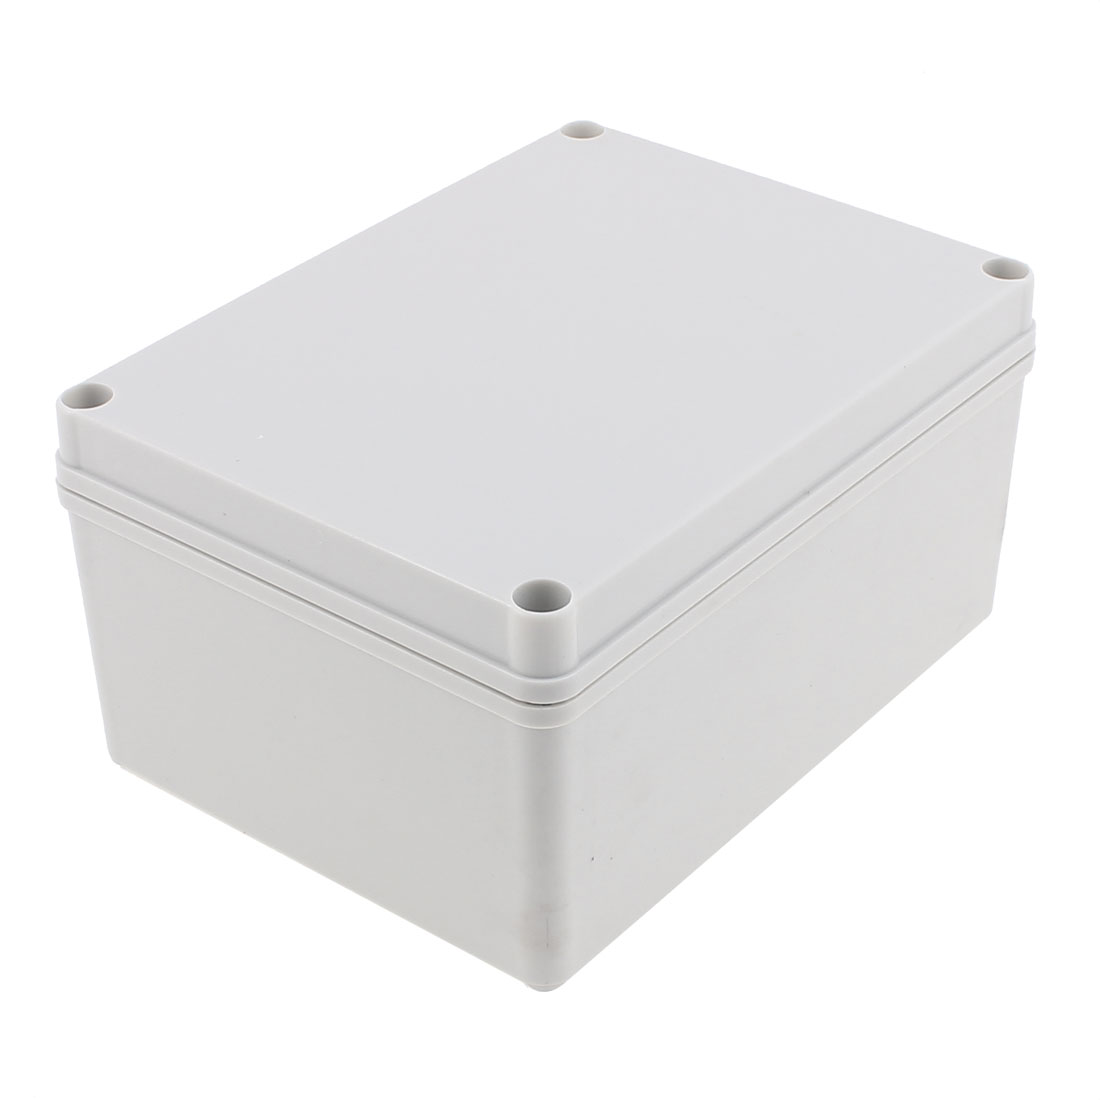 200 x 150 x 100mm Dustproof IP65 Junction Box Terminal Connecting Box Enclosure